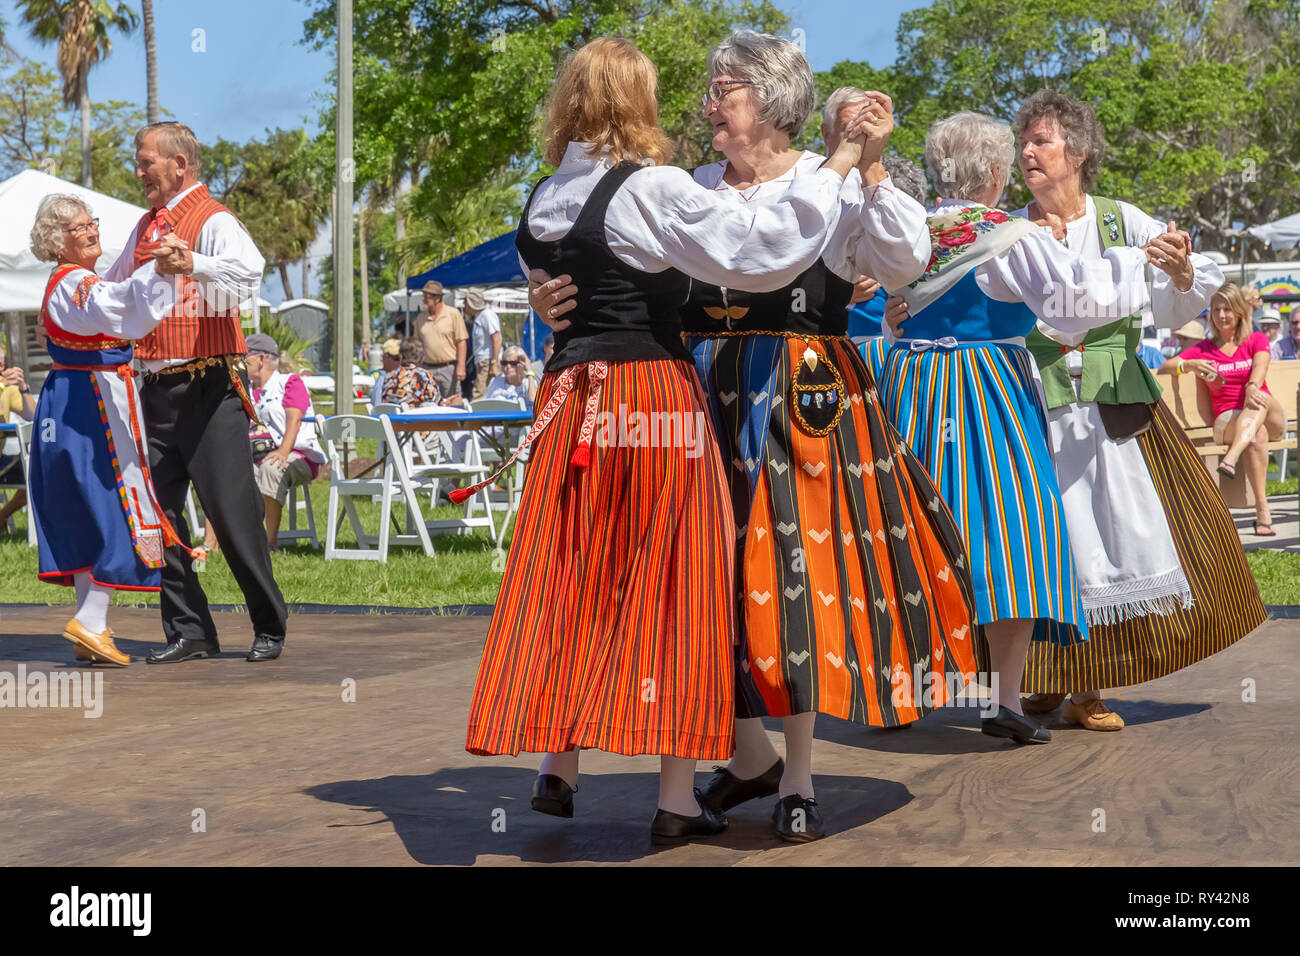 Lake Worth, Florida, USA March 3, 2019 Midnight Sun Festival Celebrating Finnish Culture. Women couples dancing together with traditional couples. - Stock Image